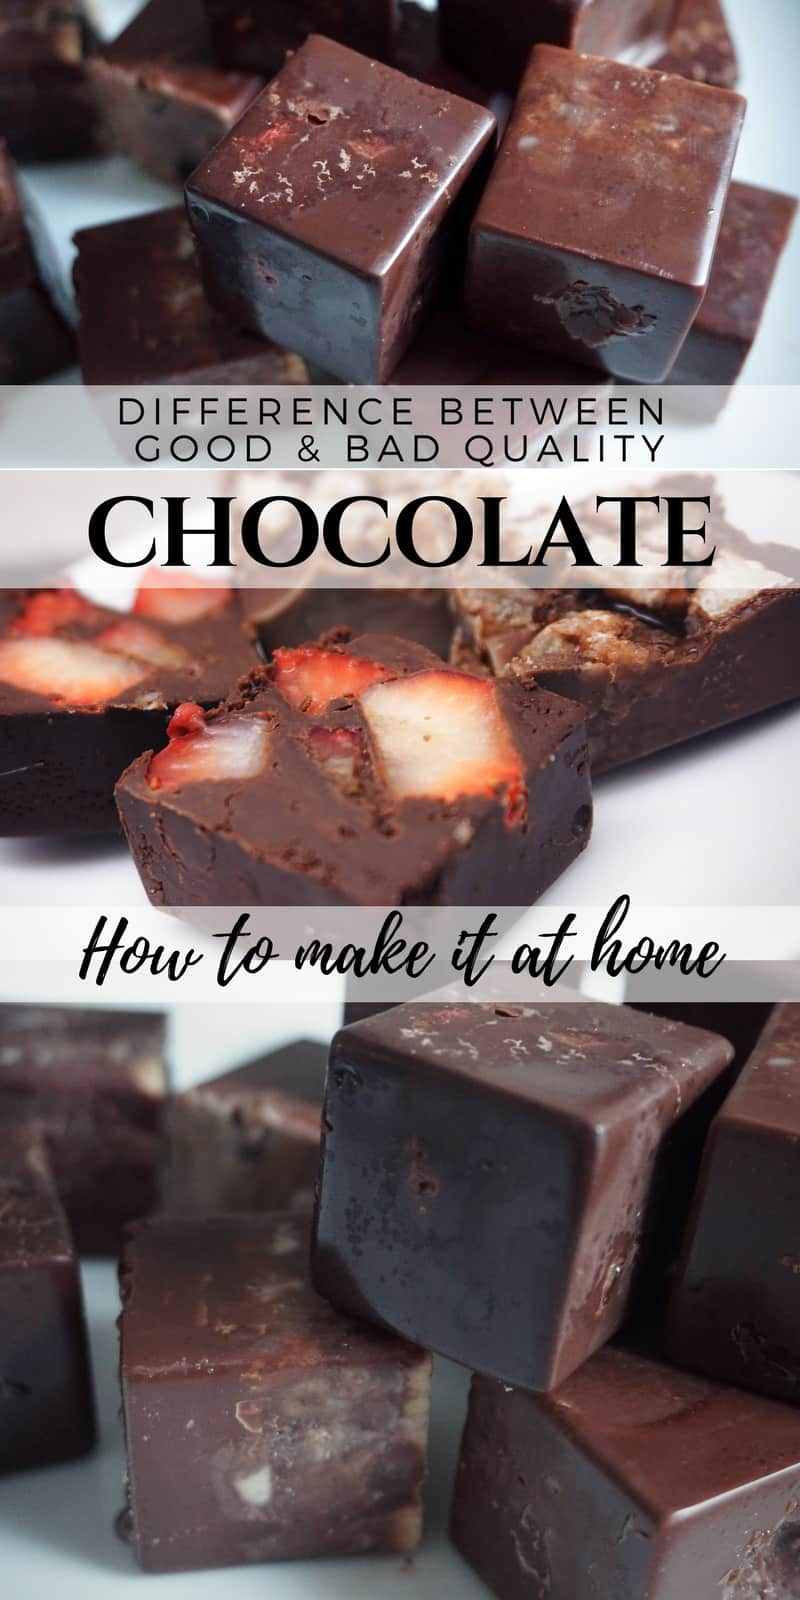 Differences Between Good And Bad Quality Chocolate And How to Make It At Home